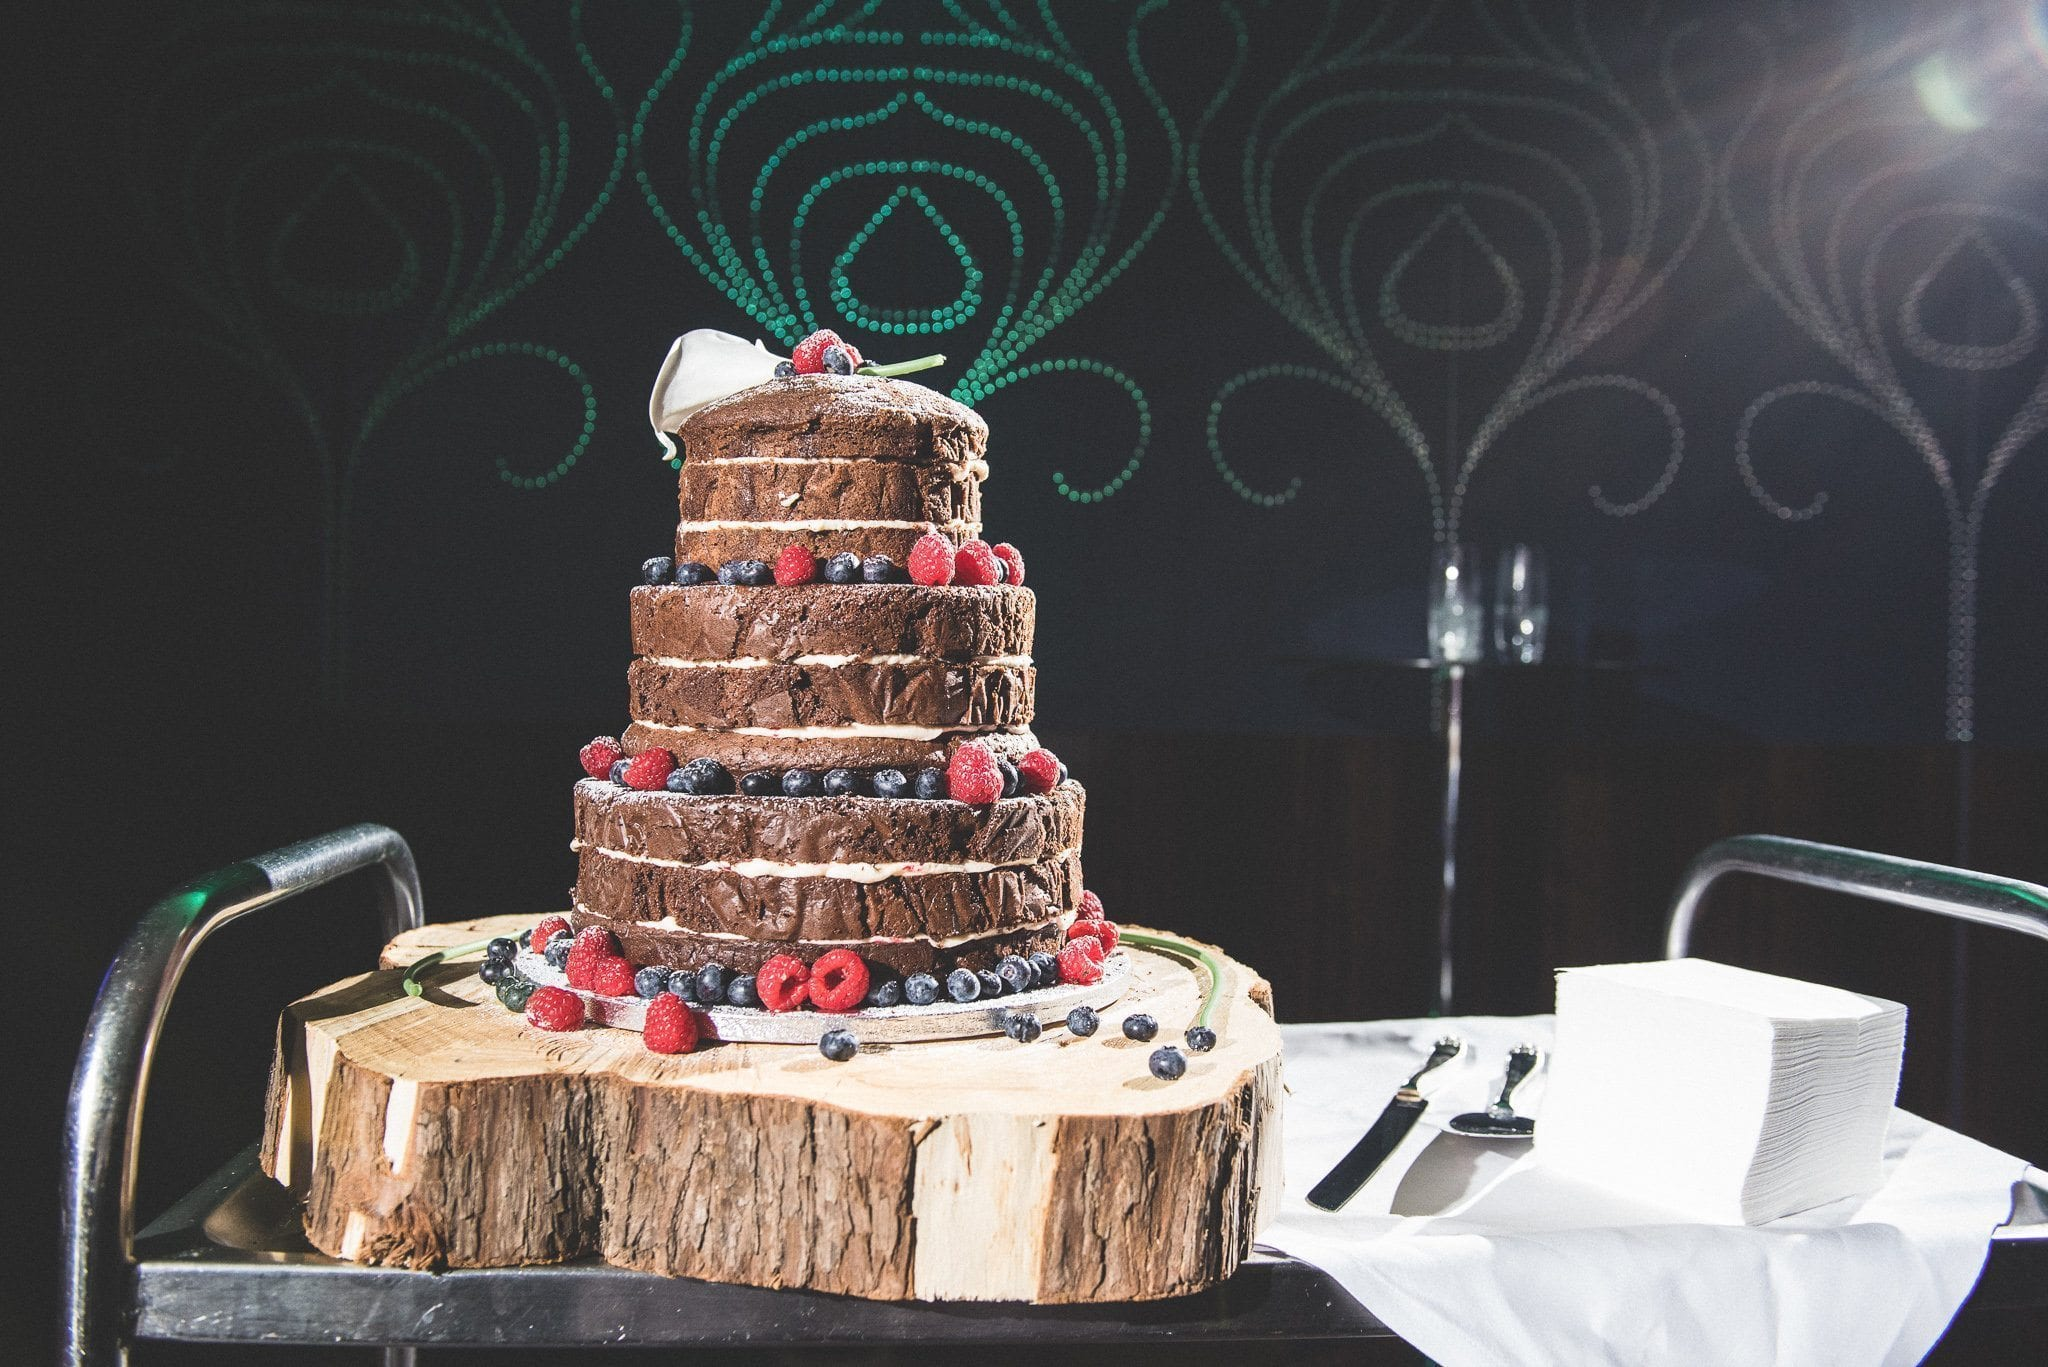 The wedding cake - naked chocolate cake decorated with berries - and ready to be cut